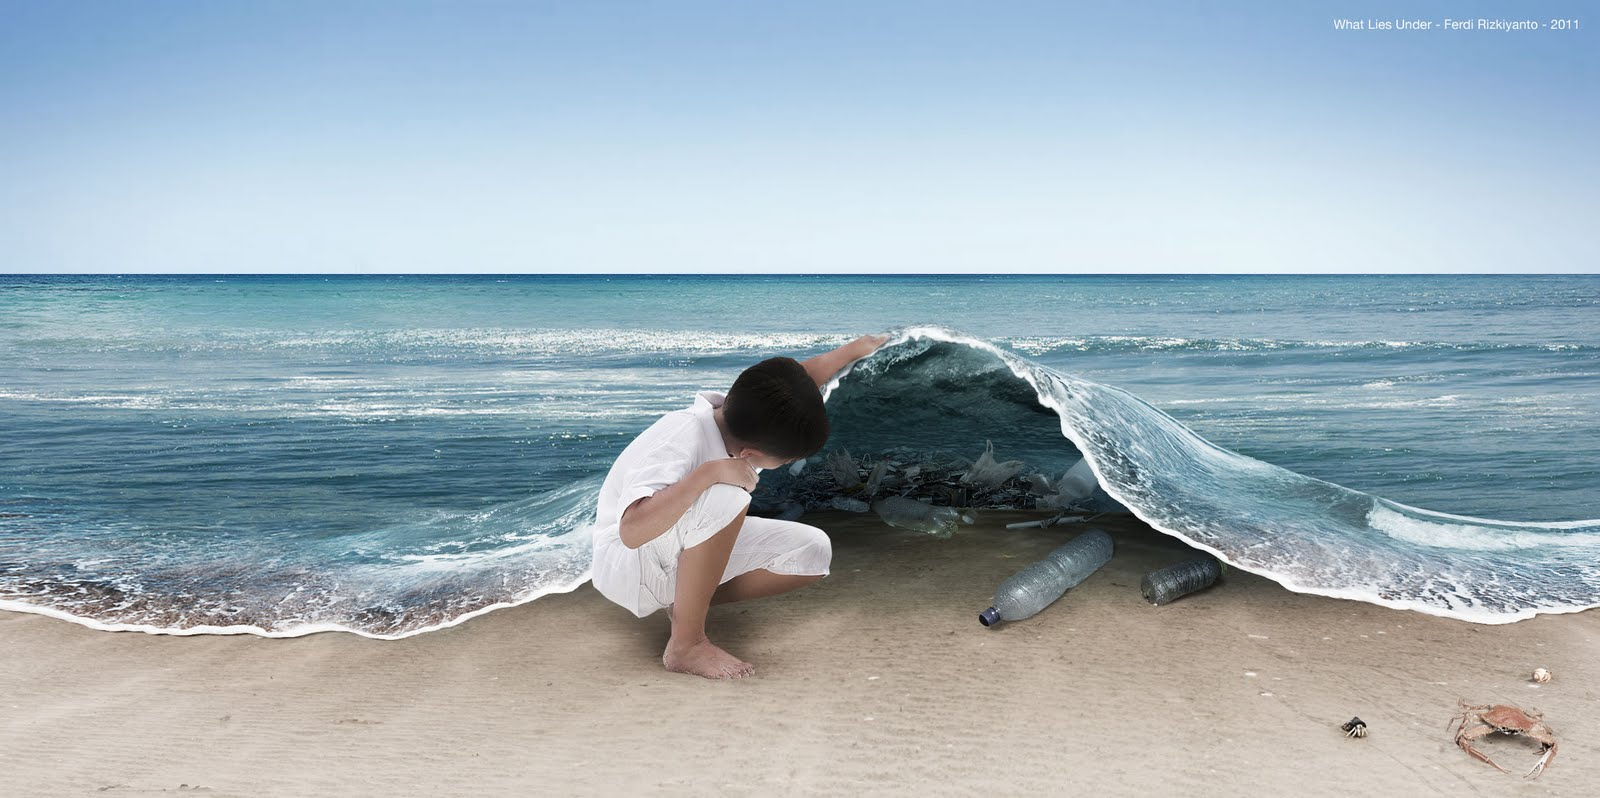 Pollution in the oceans (What lies under - Image F. Rizkiyanto 2011)